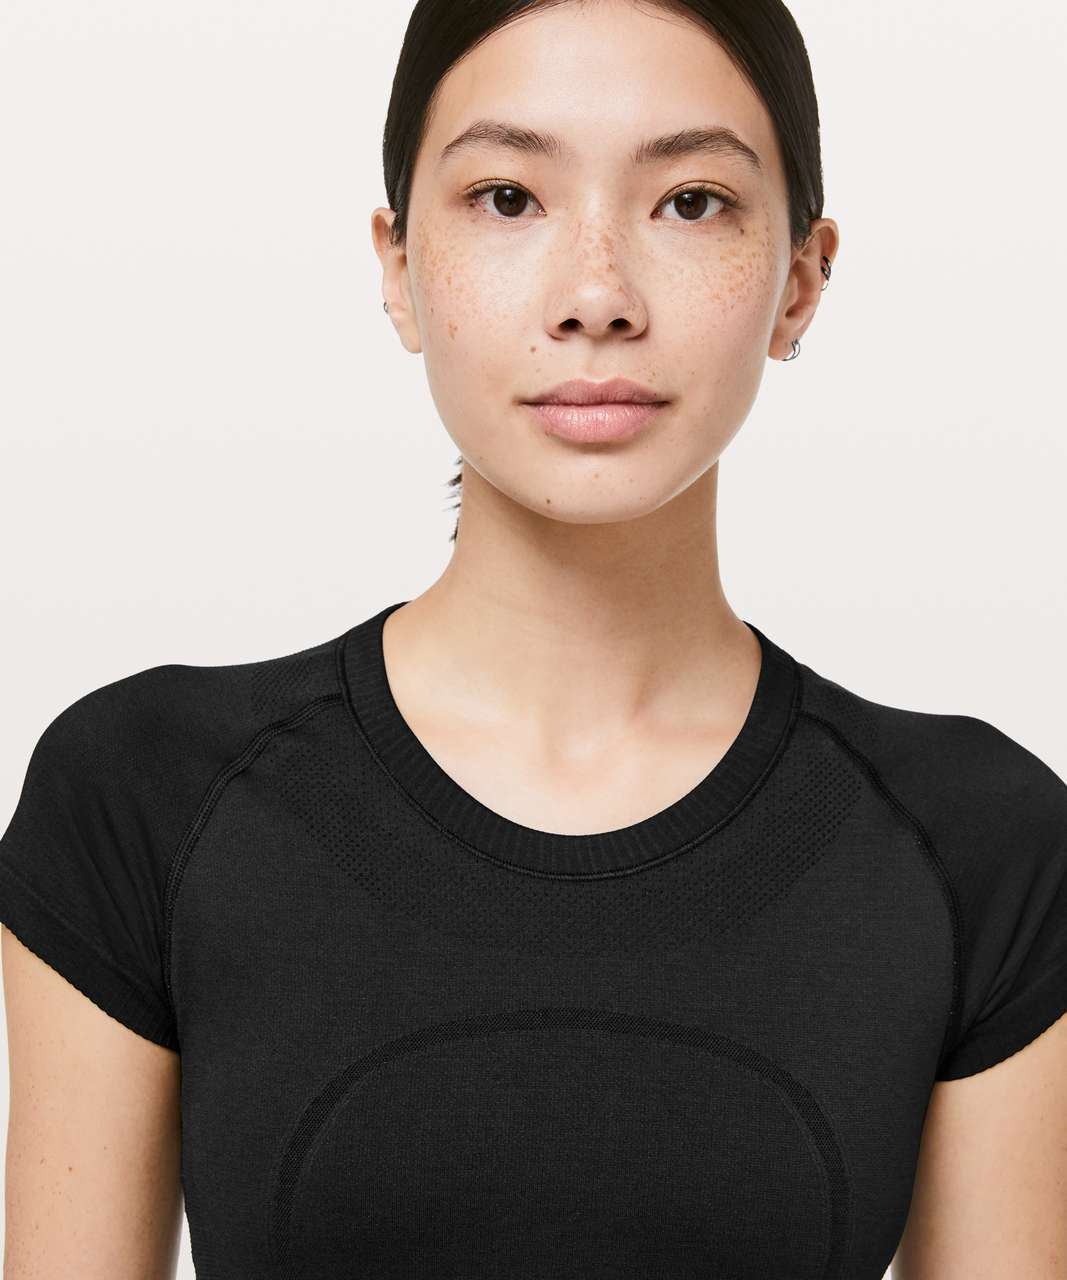 Lululemon Swiftly Tech Short Sleeve Crew *Lunar New Year - Black / Black